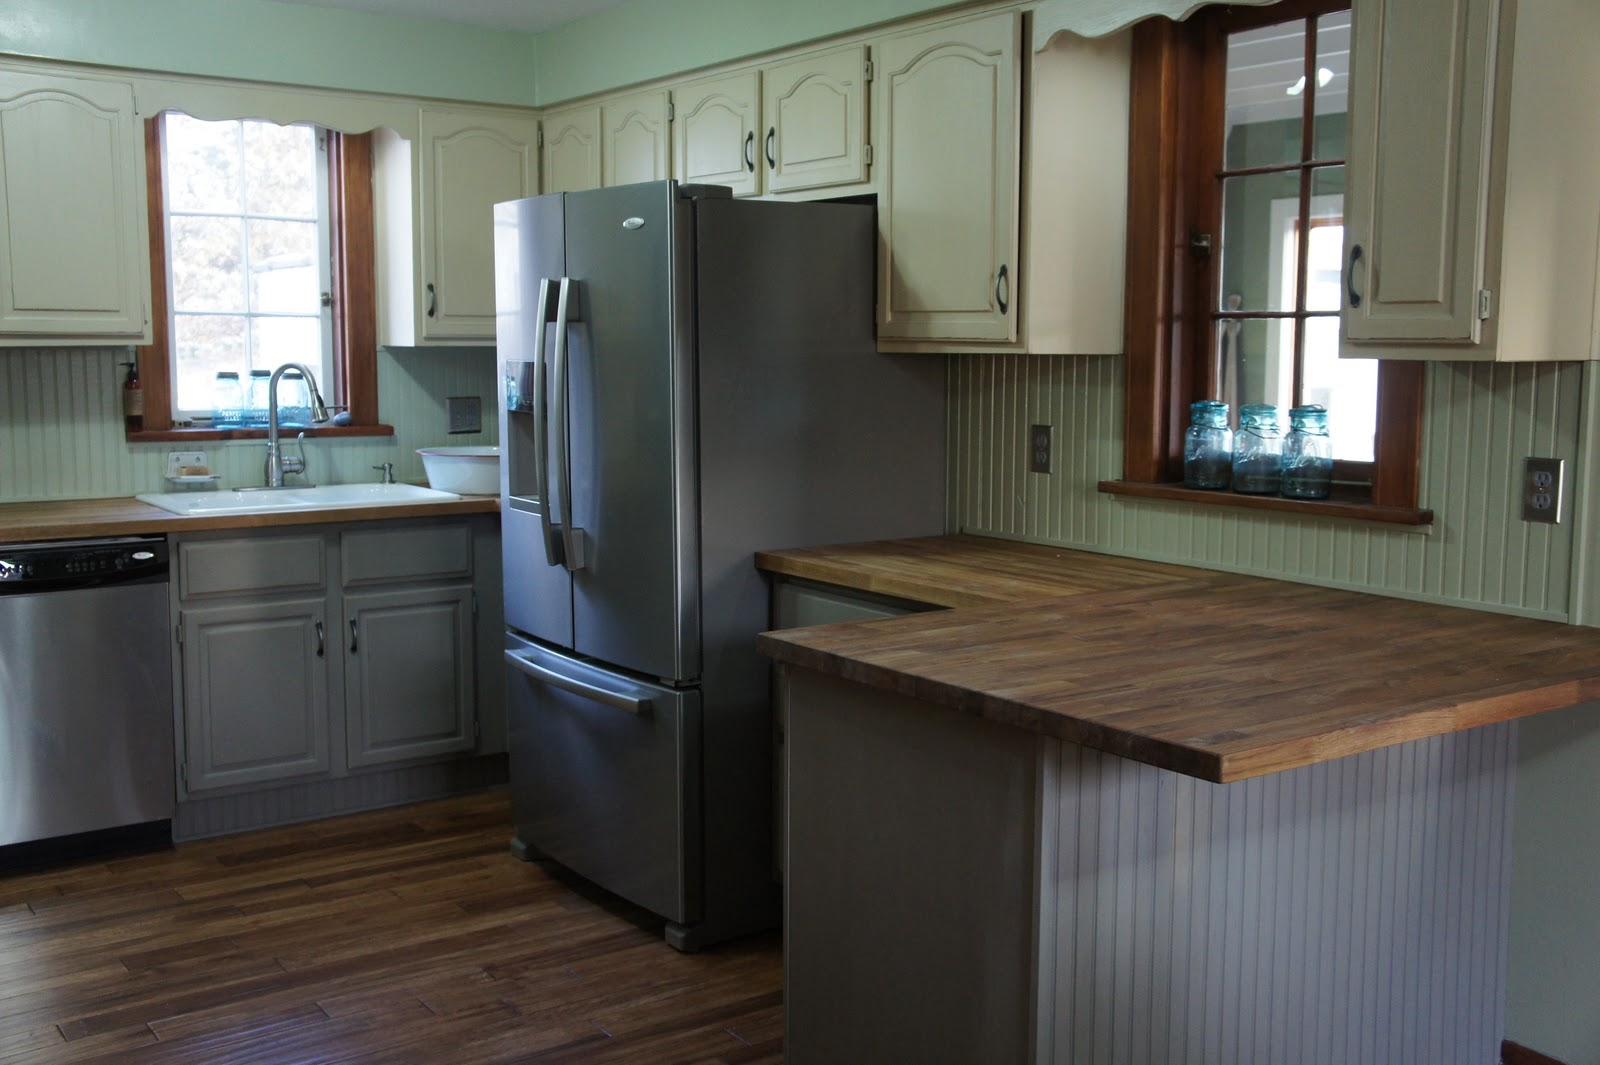 my kitchen cabinets with annie sloan paint kitchen cabinets My Kitchen Cabinets with Annie Sloan Chalk Paint